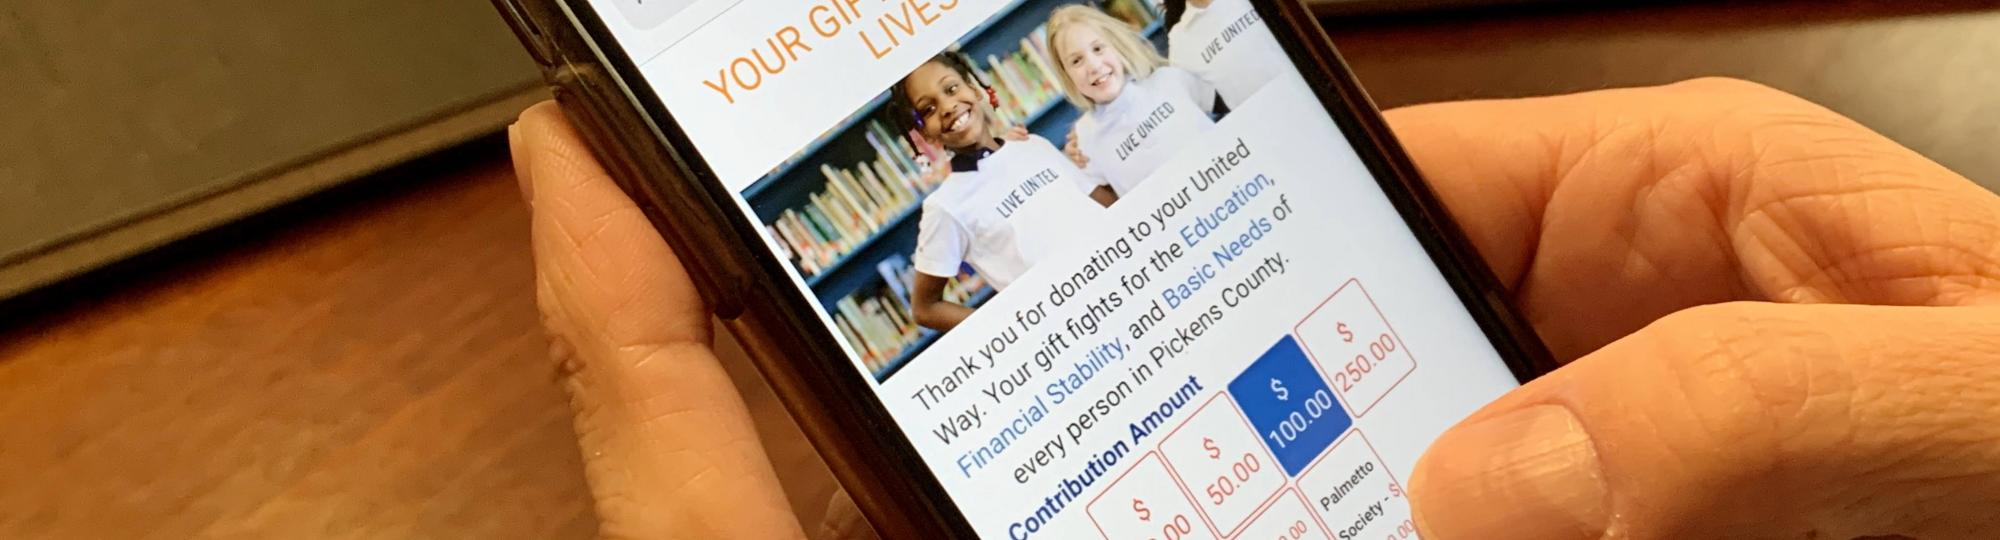 Person holding a phone opened to the donation page